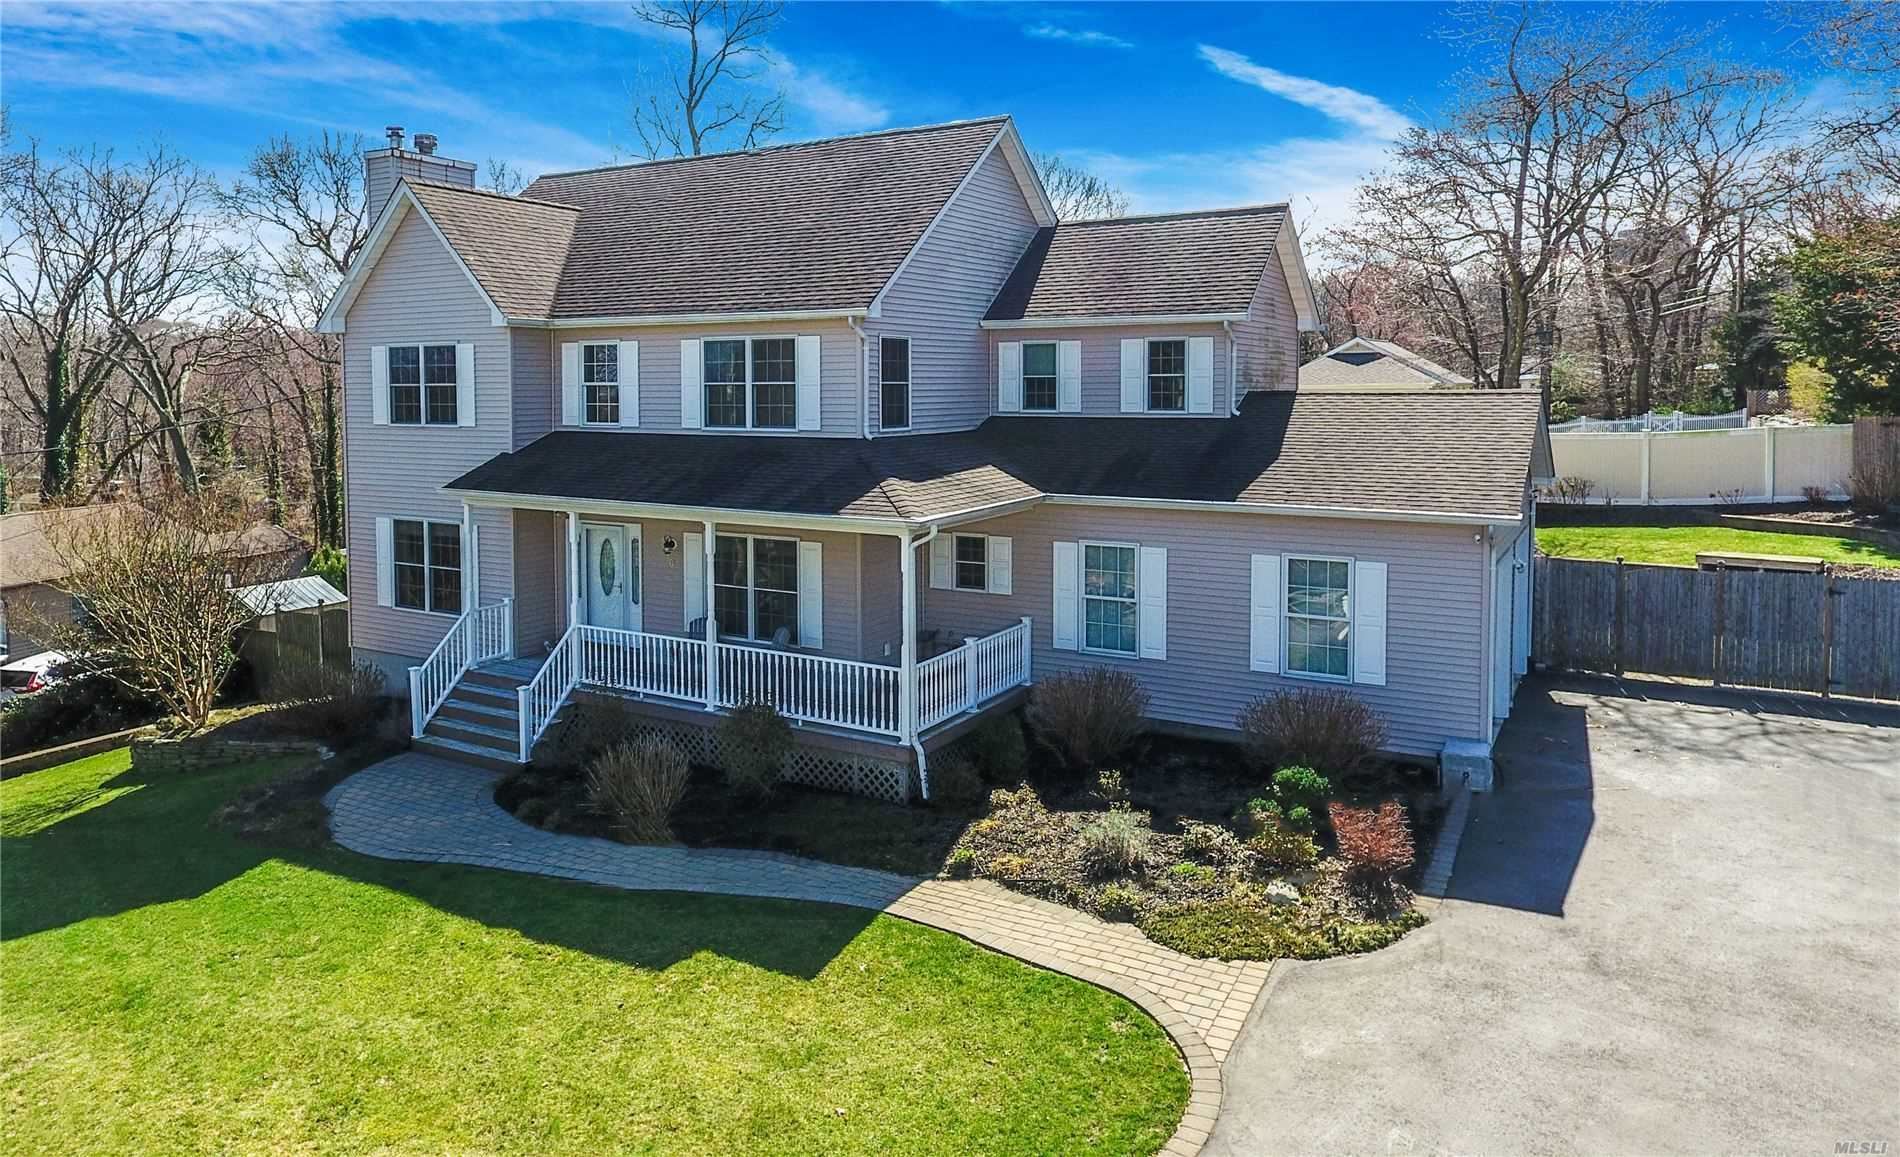 6 Greenlawn Rd, Sound Beach, NY 11789 - MLS#: 3210581